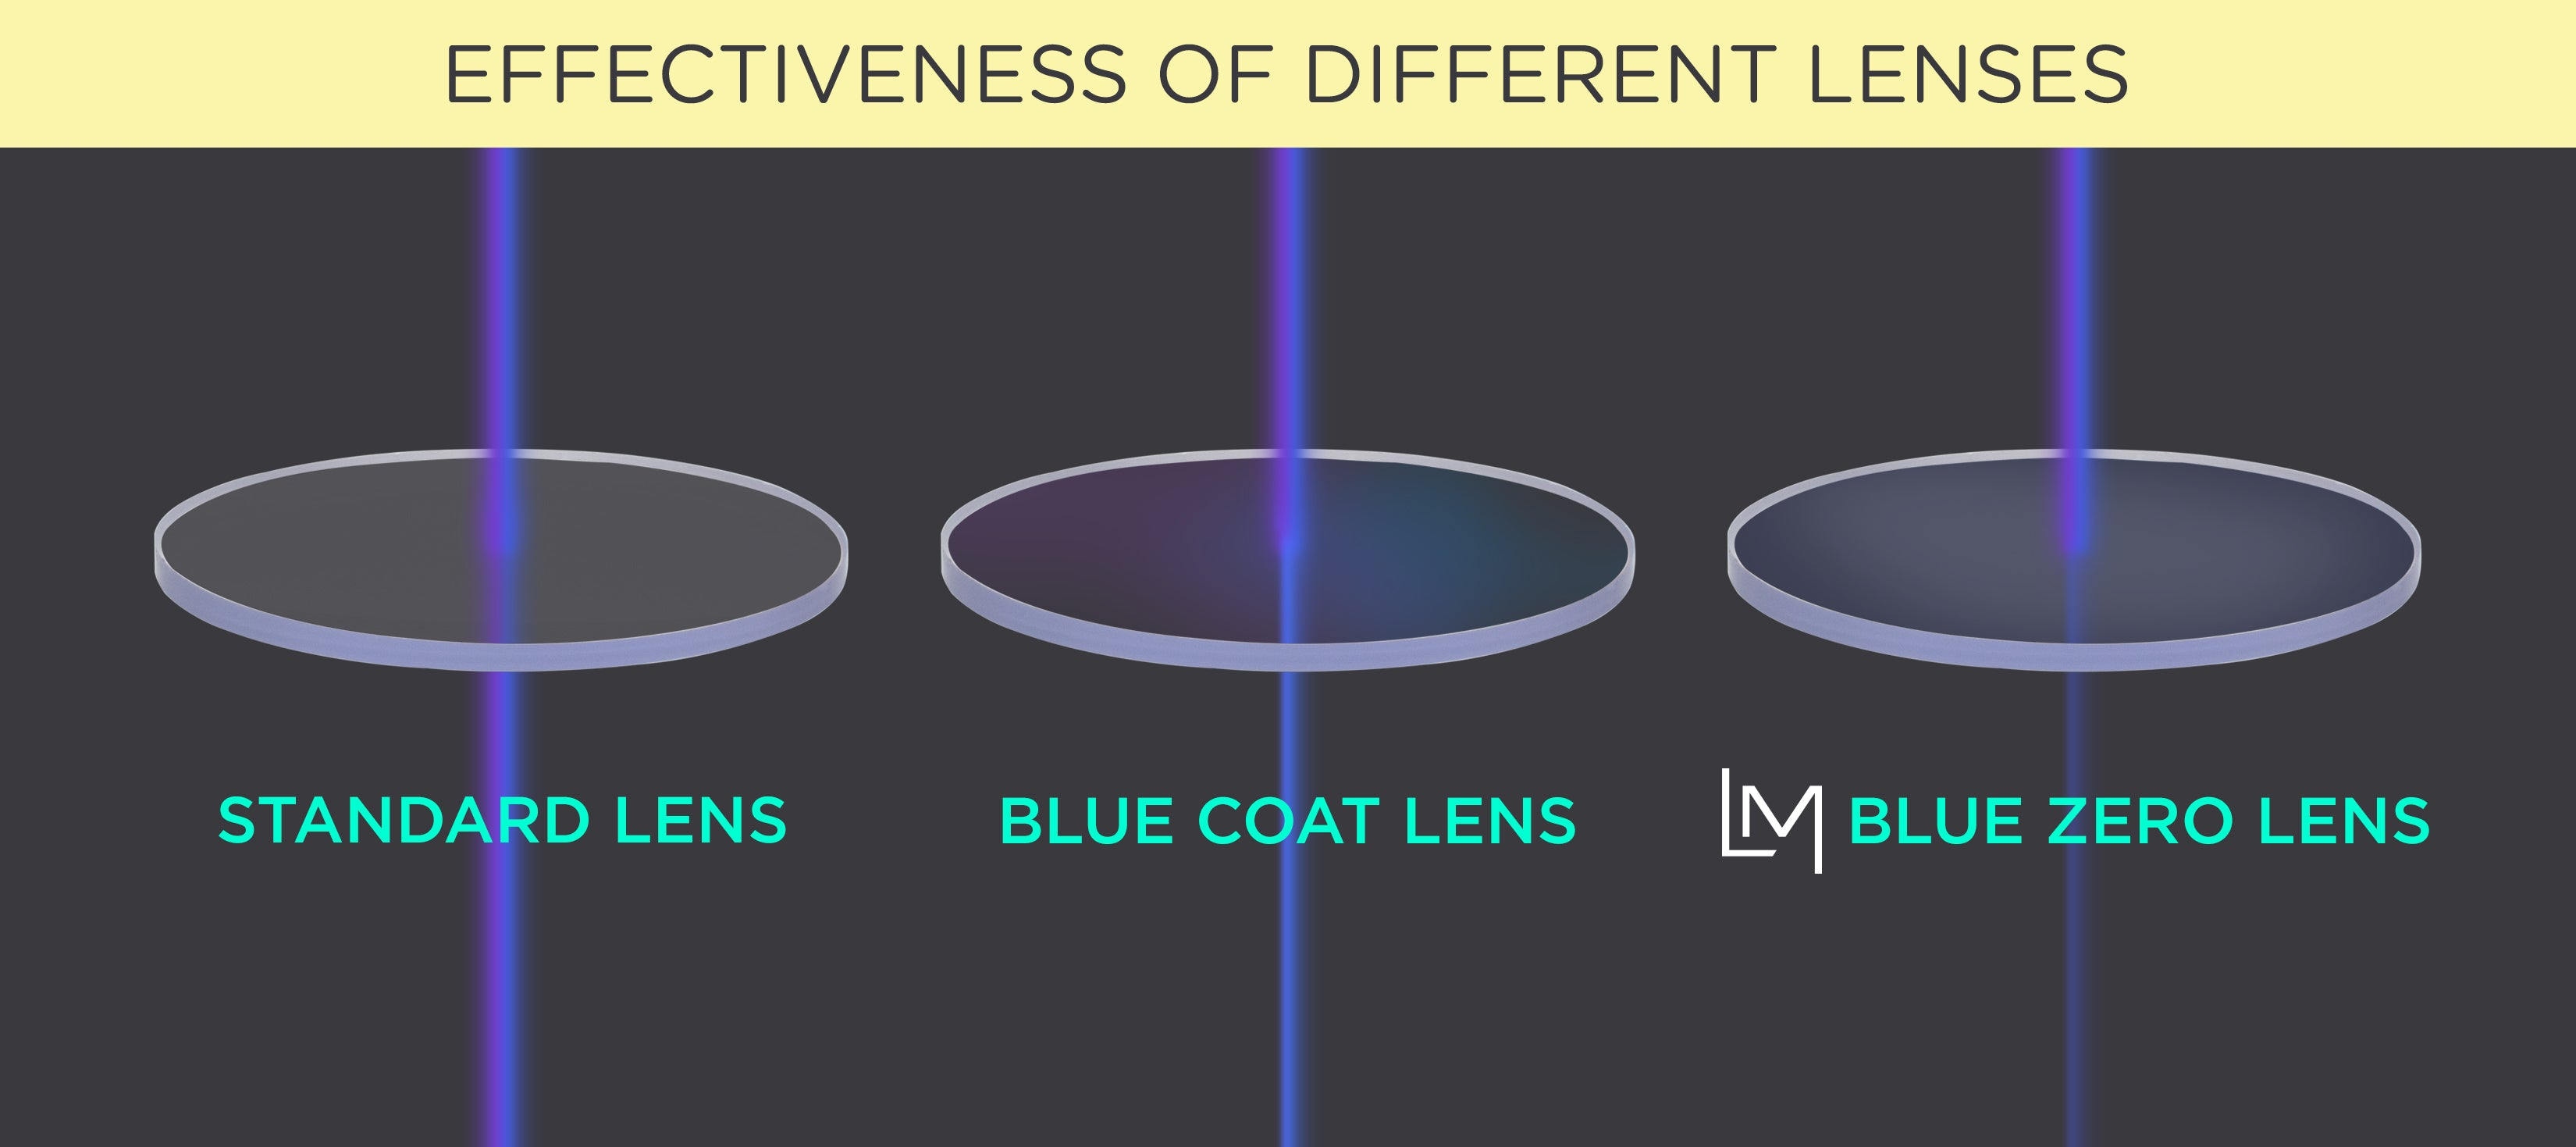 Effectiveness of Different Lenses